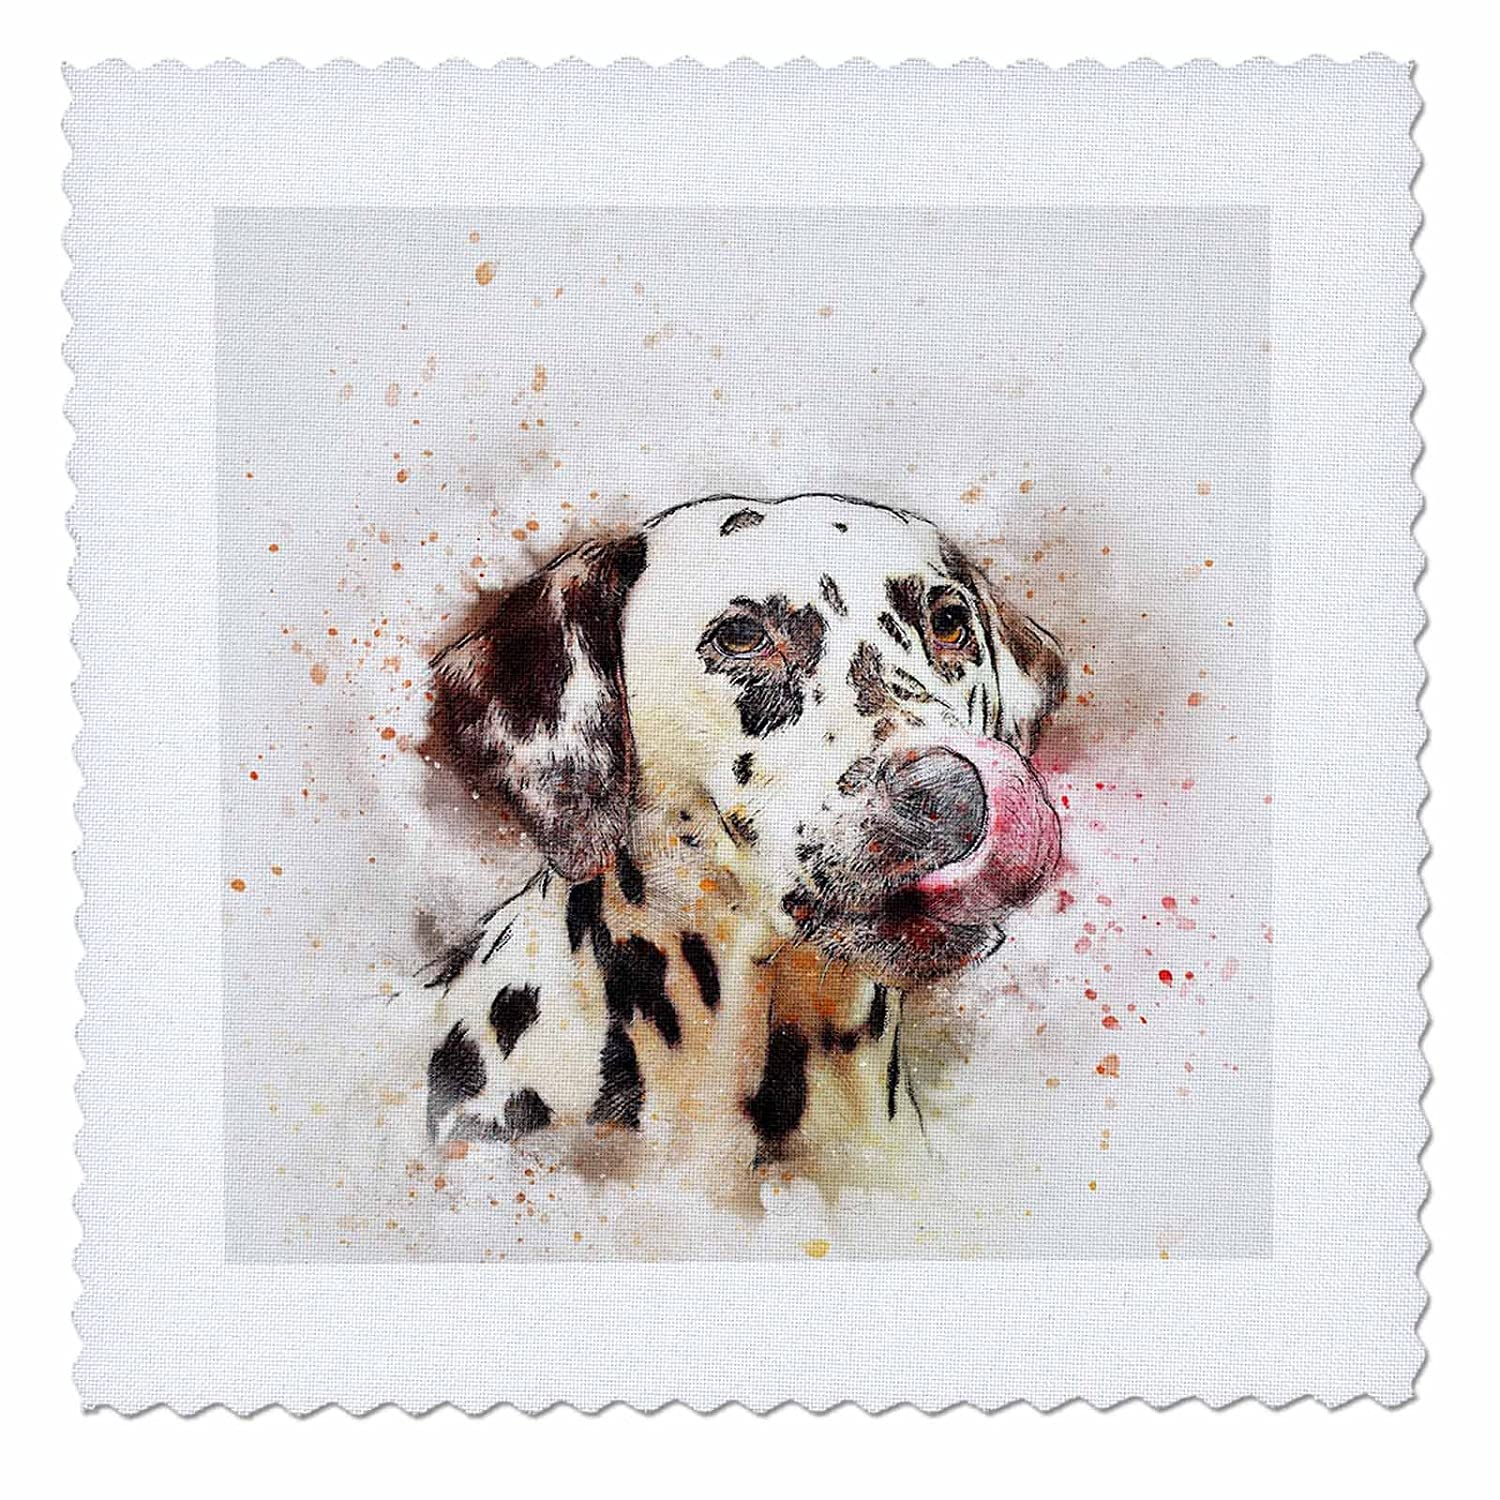 3dRose Sven Herkenrath Animal - Dalmatiner Watercolor Dog Pet Puppy Funny Animal Portrait - 16x16 inch quilt square (qs_280292_6)